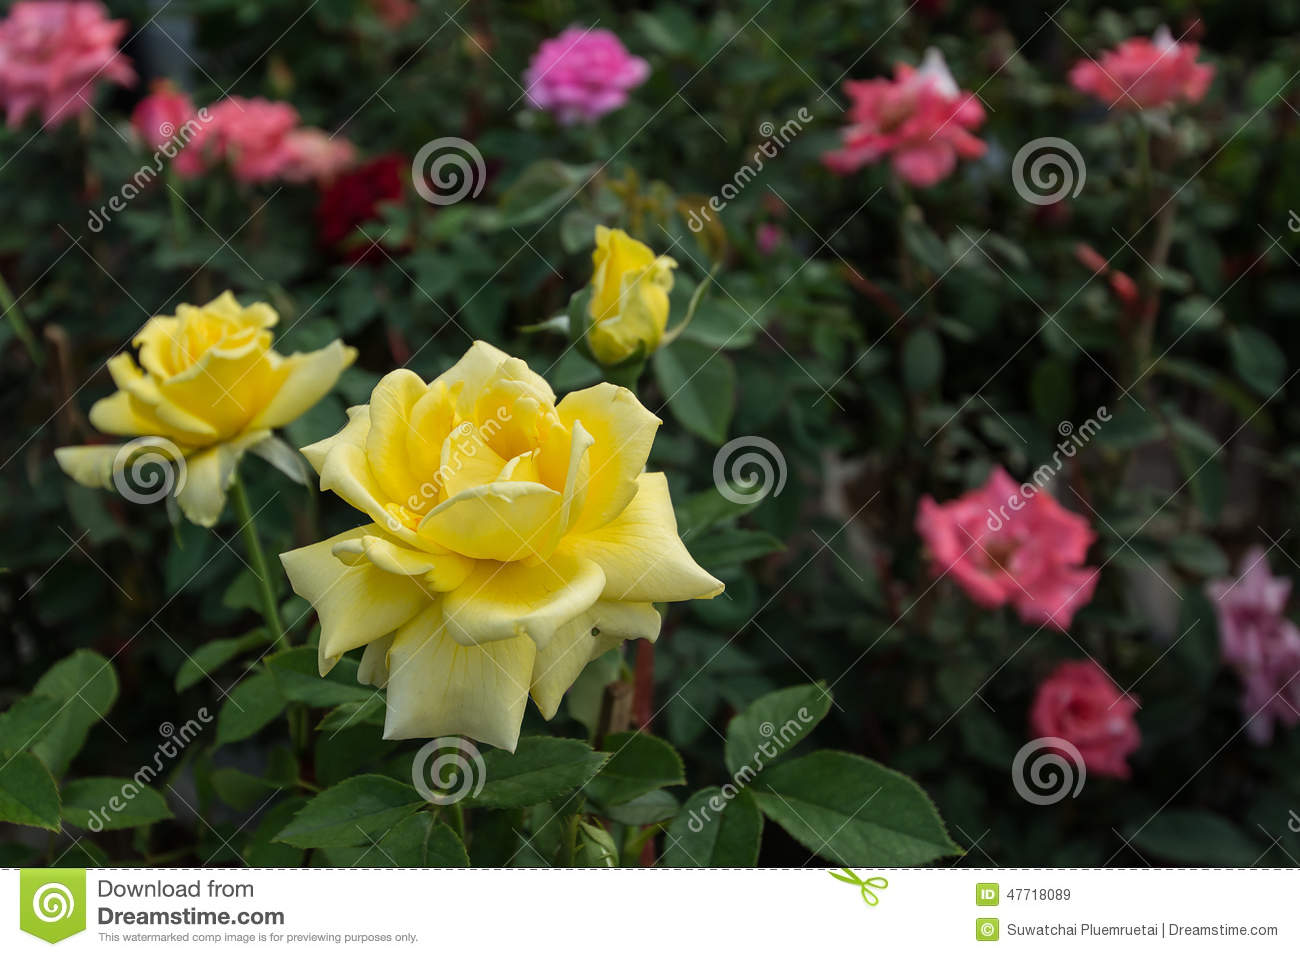 Rose flower garden pictures - Yellow Rose Flower In Garden Royalty Free Stock Images